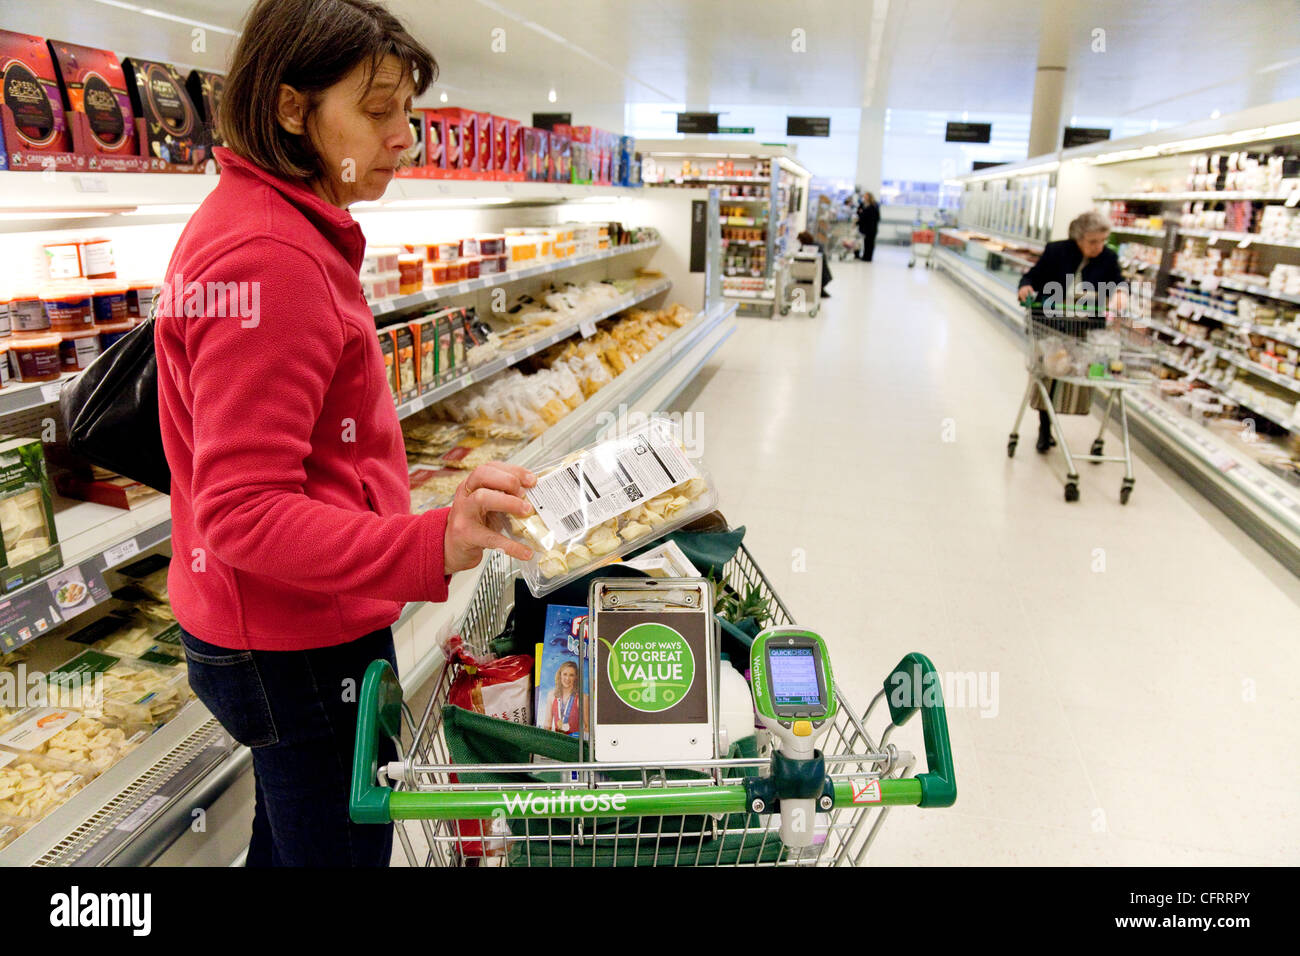 A woman shopping for food in Waitrose supermarket, UK - Stock Image